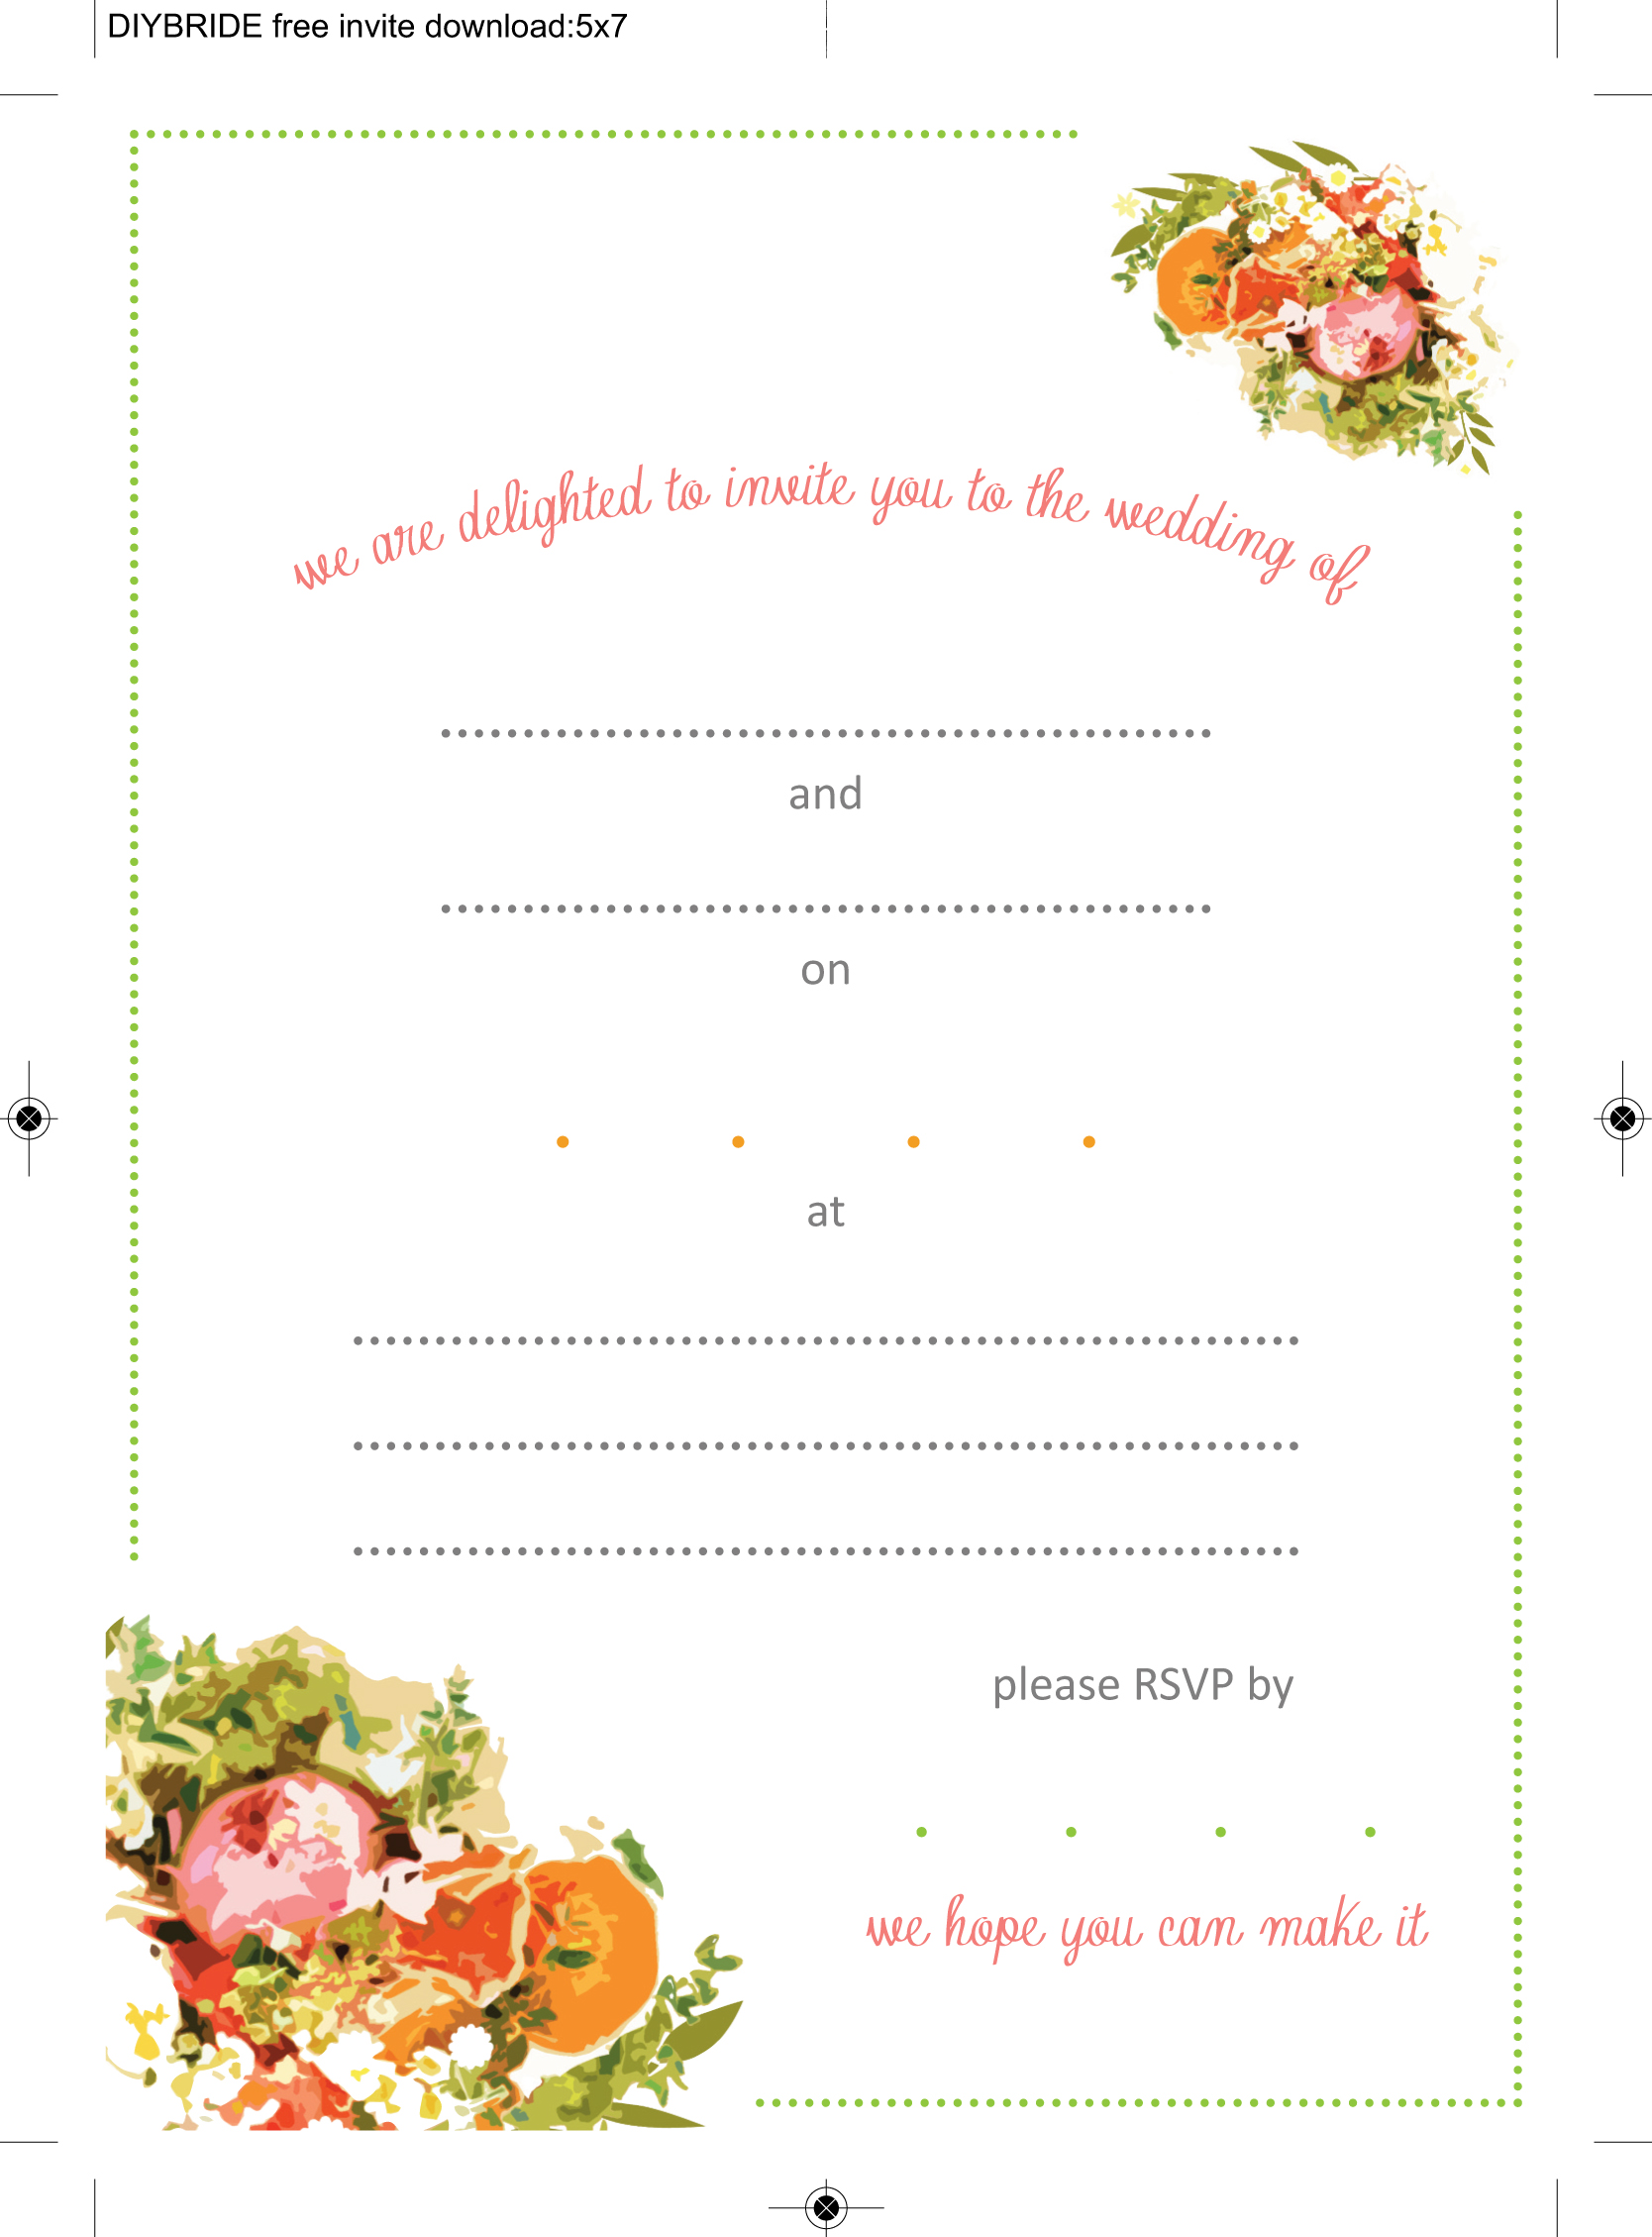 Wedding Invitation Templates That Are Cute And Easy To Make - Birthday invitation using ms word